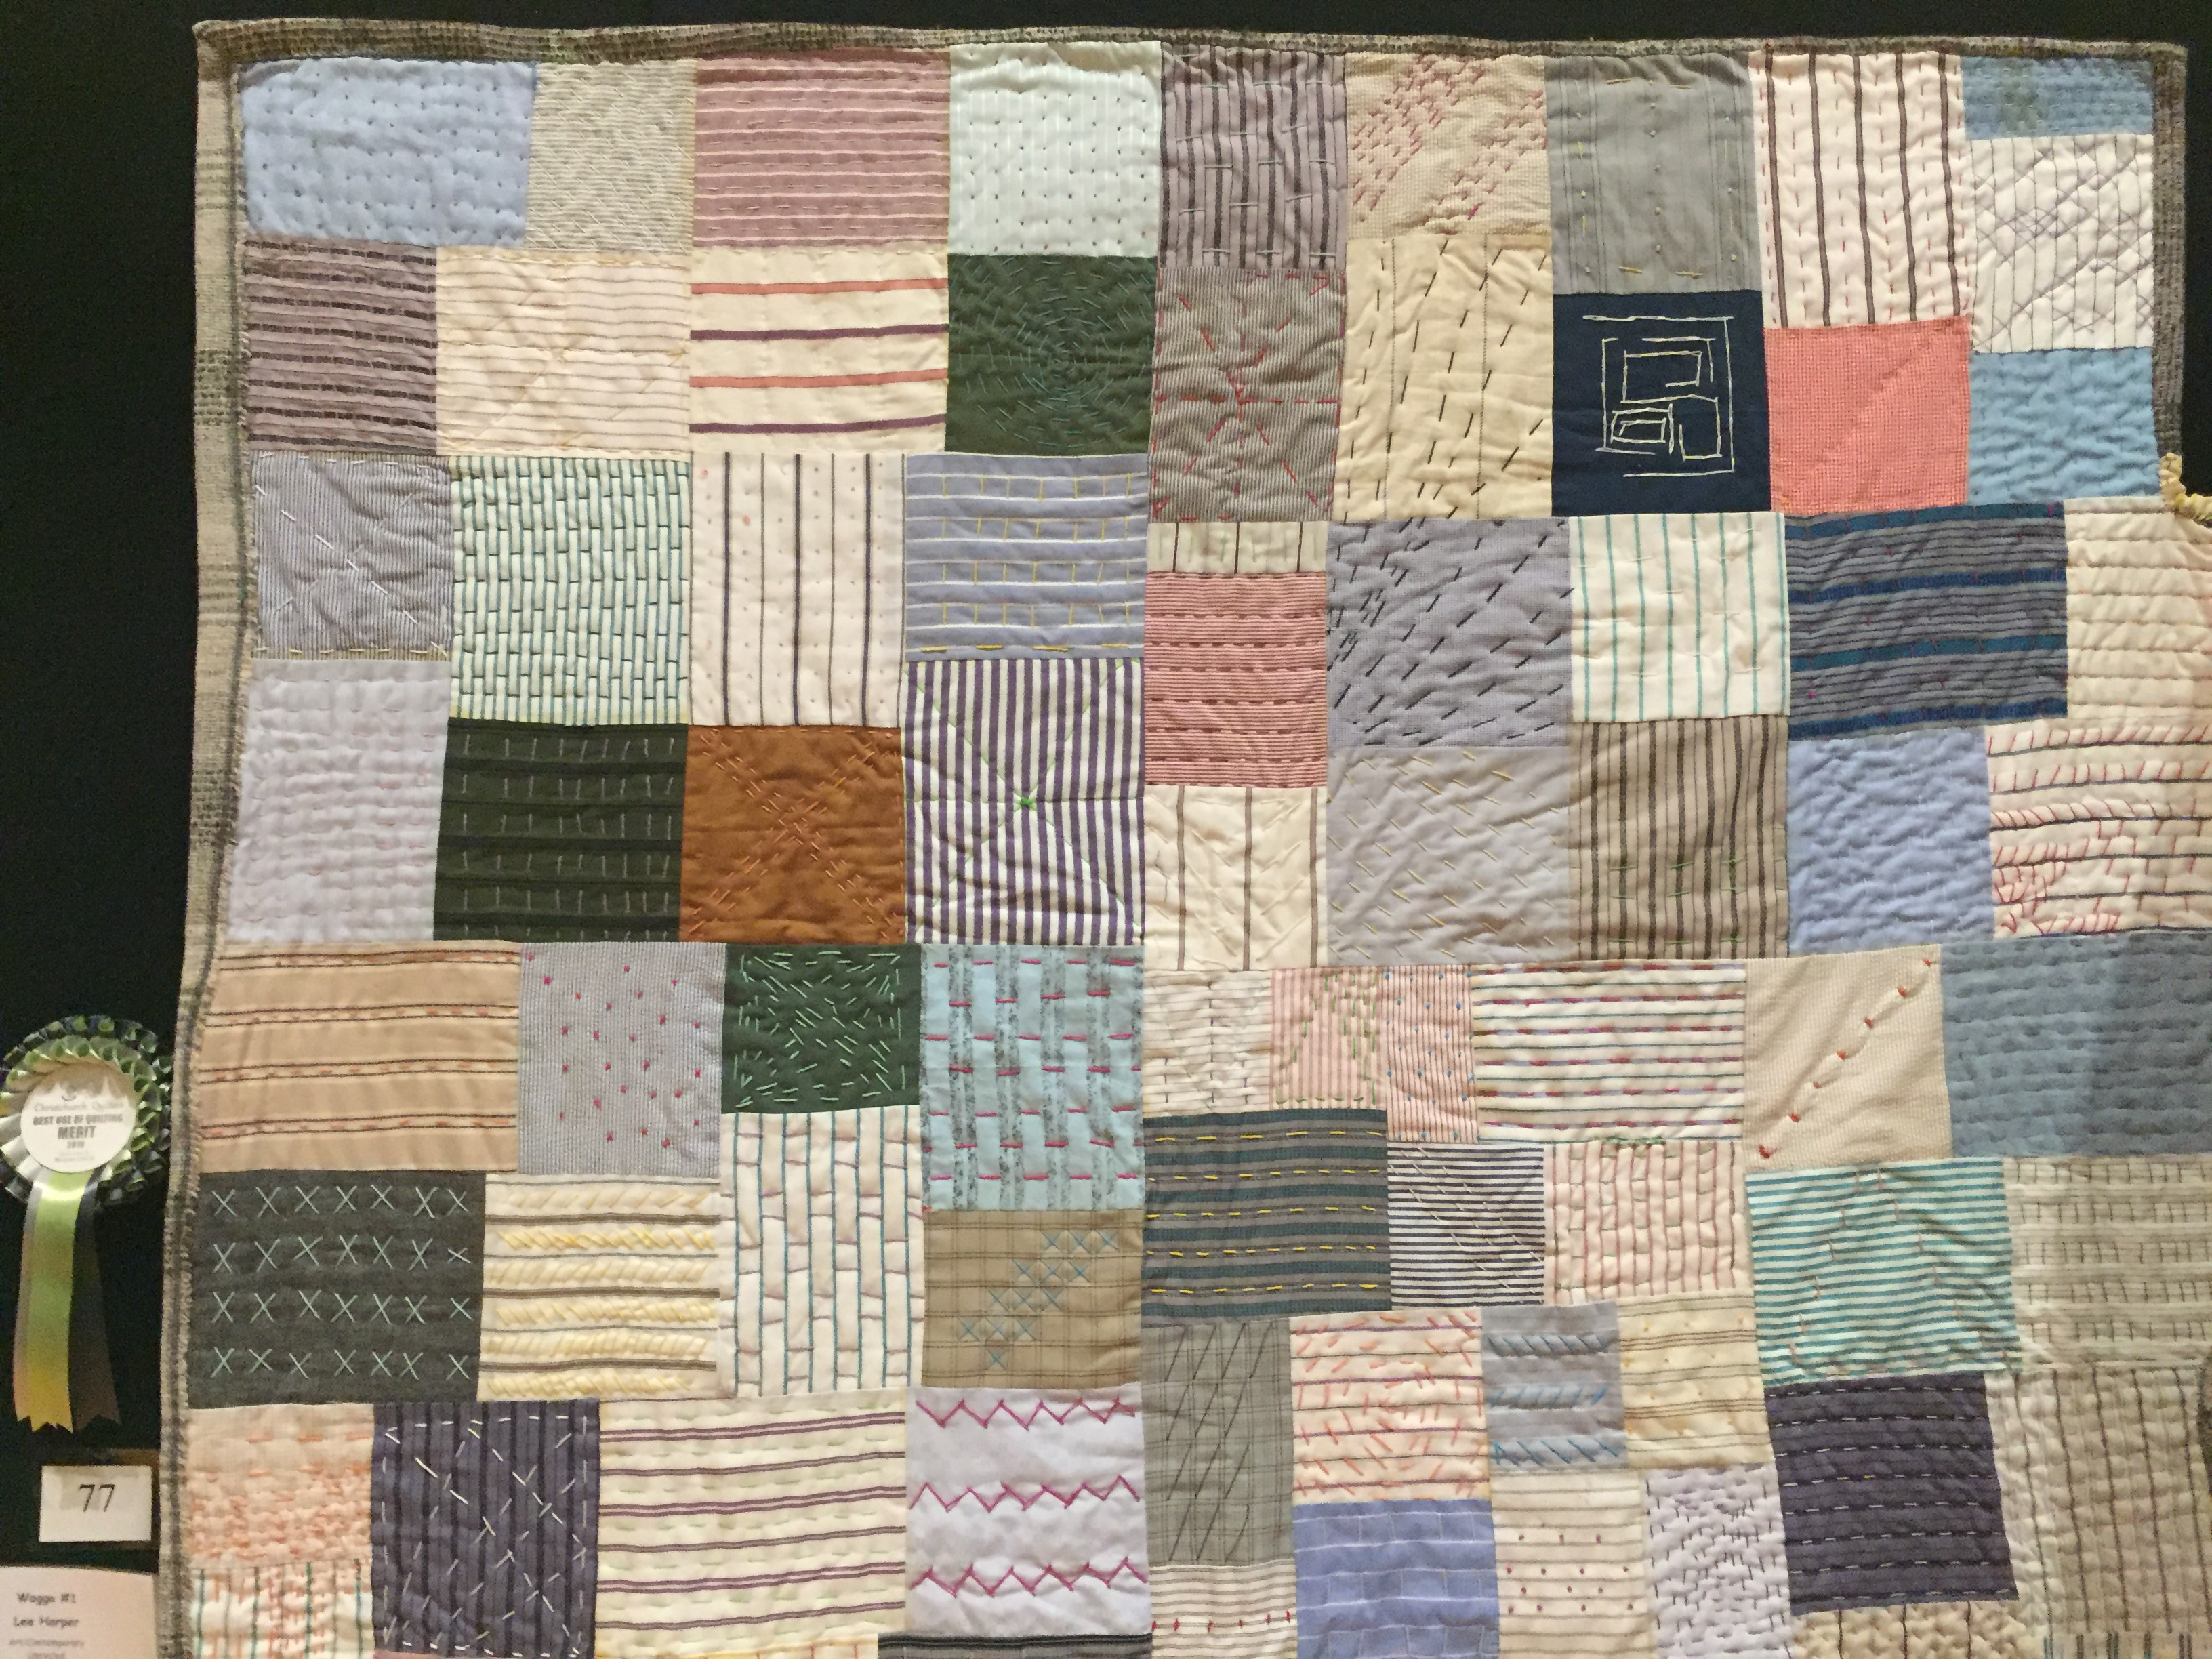 Wagga #1 - Lee Harper - Best use of Quilting - MERIT - Sponsored by Bernina CHCH